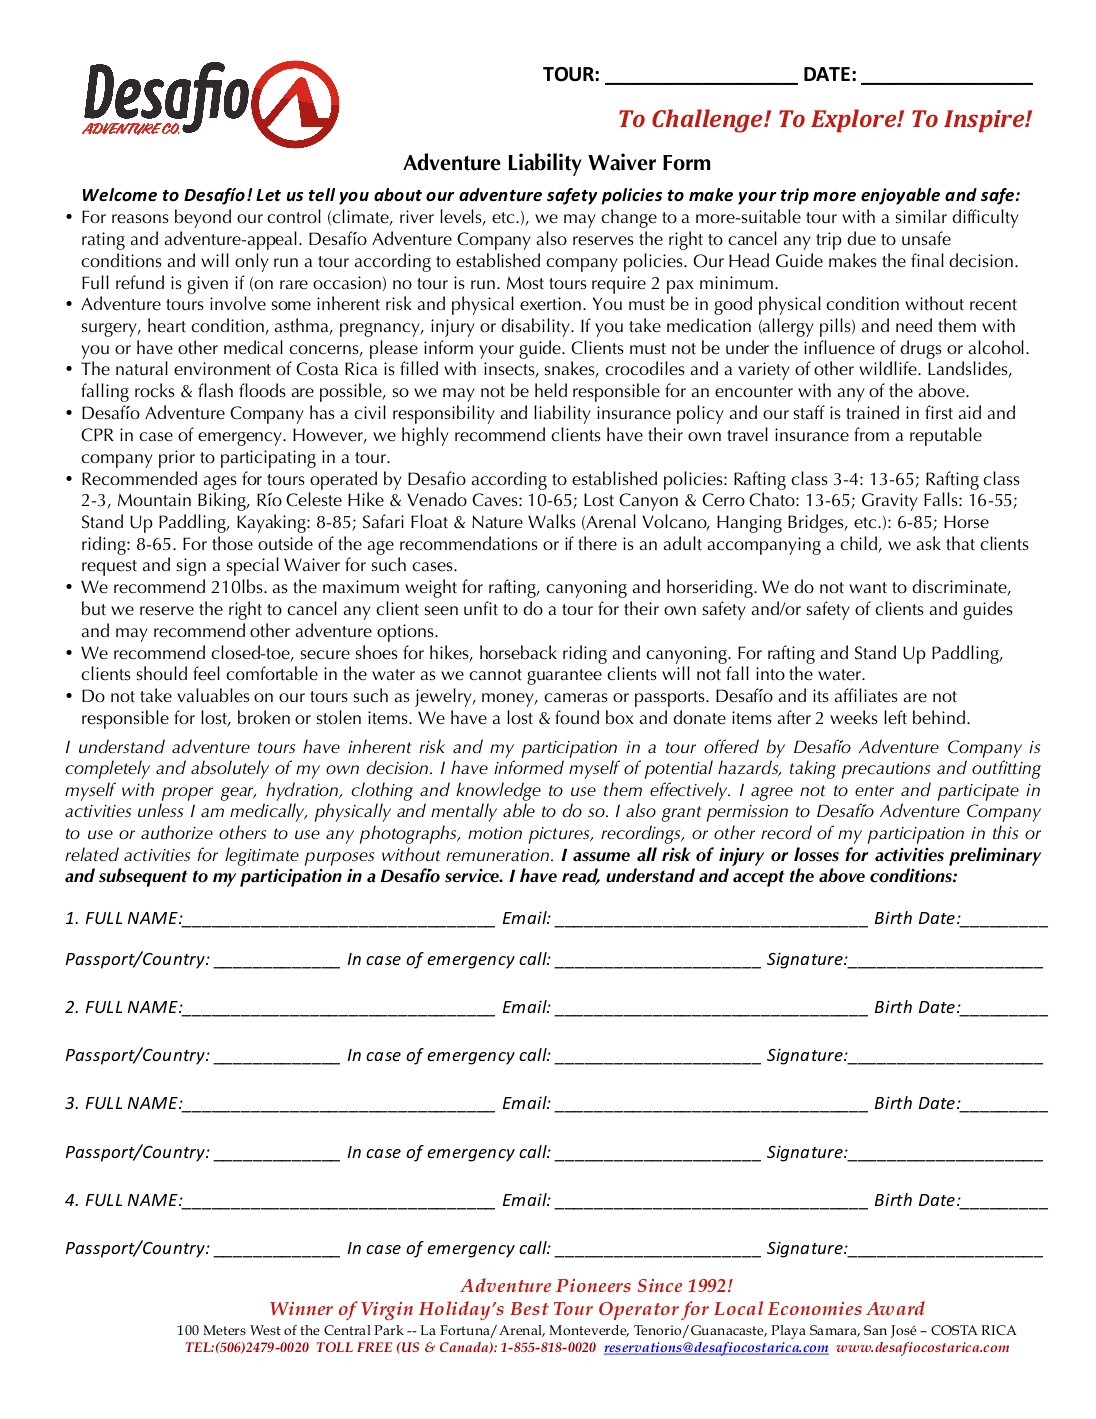 Liability And Waiver Form Desafio Adventure Company – Free Liability Waiver Form Template